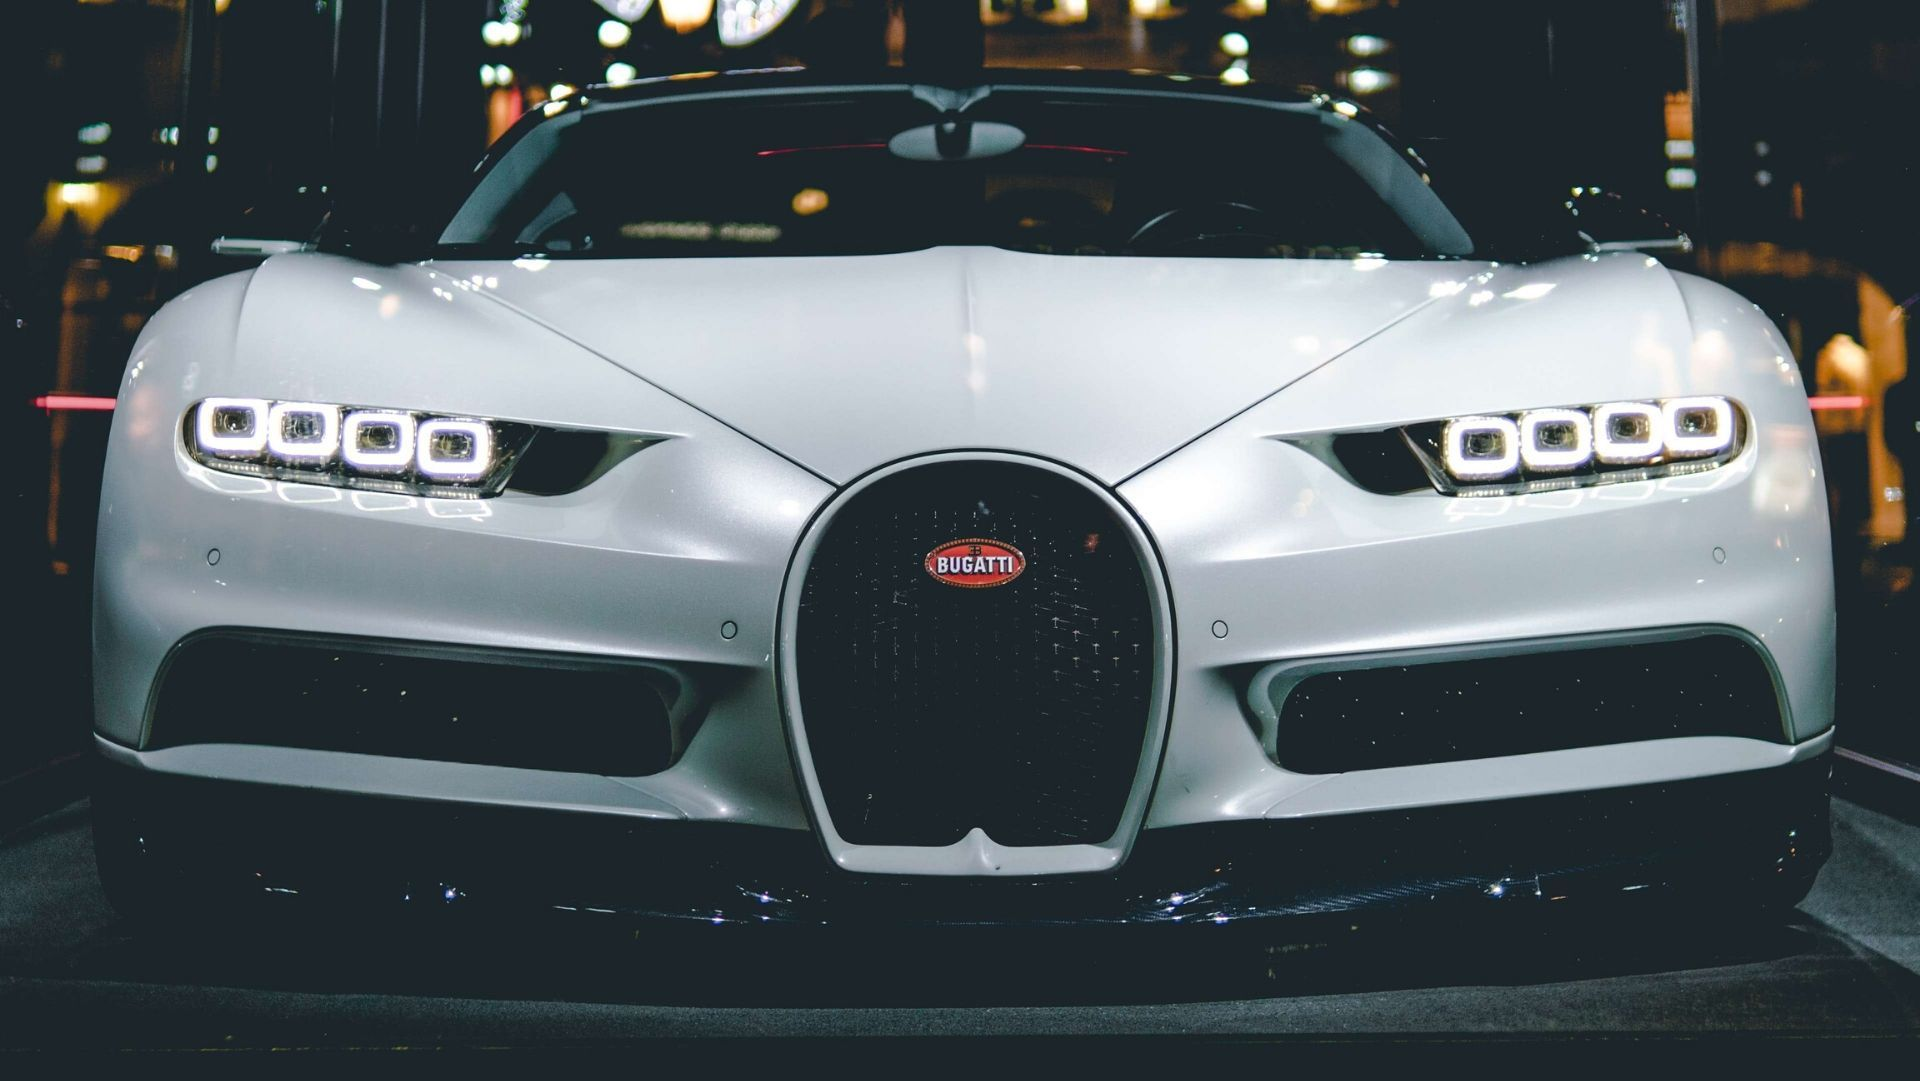 Car Wallpapers For Laptop 50 Free Hd Car Wallpapers Foto Kleuren Prints Laptop car wallpaper hd 1080p free